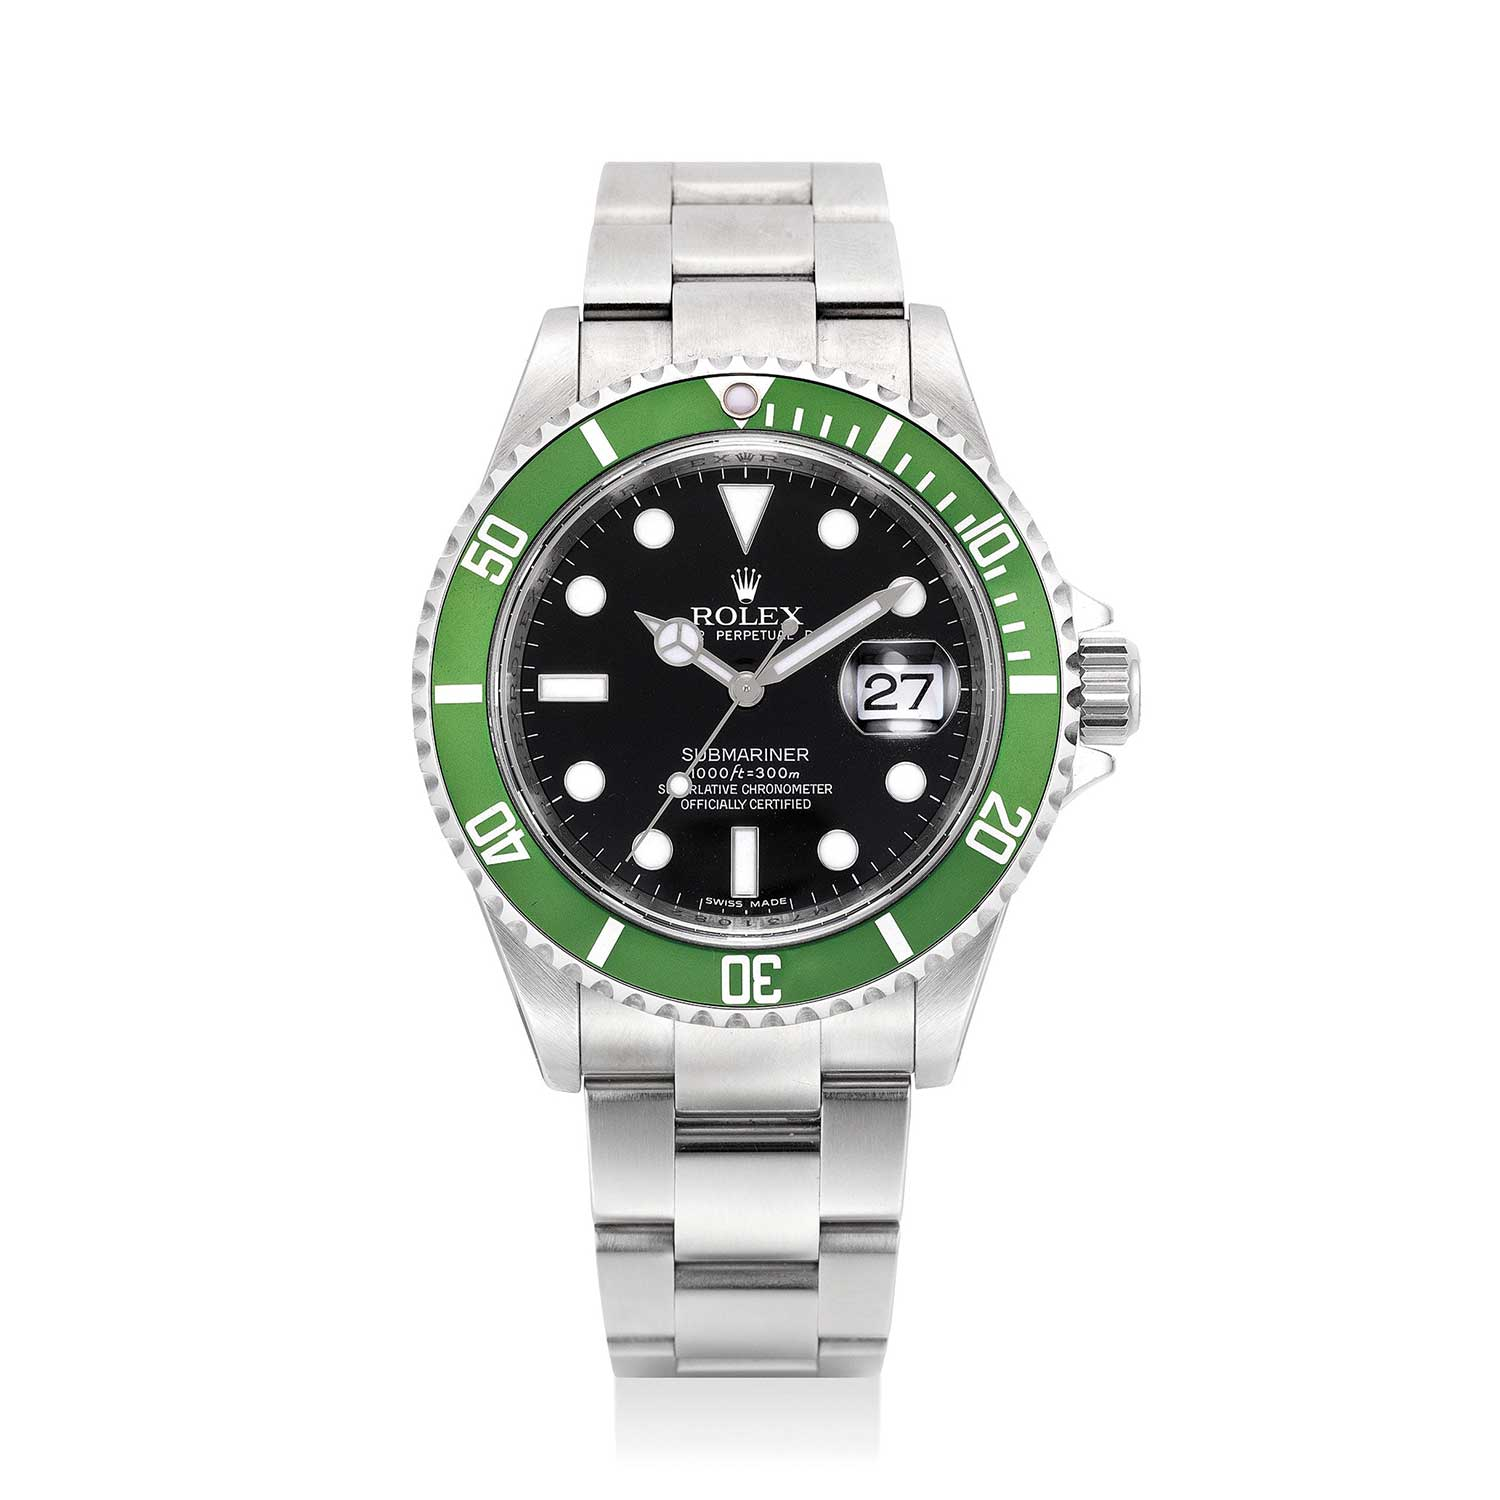 """The ref. 16610LV was released to celebrate 50 years of the Submariner in 2003 and was soon nicknamed """"Kermit"""" by the collecting community (Image: Phillips.com)"""